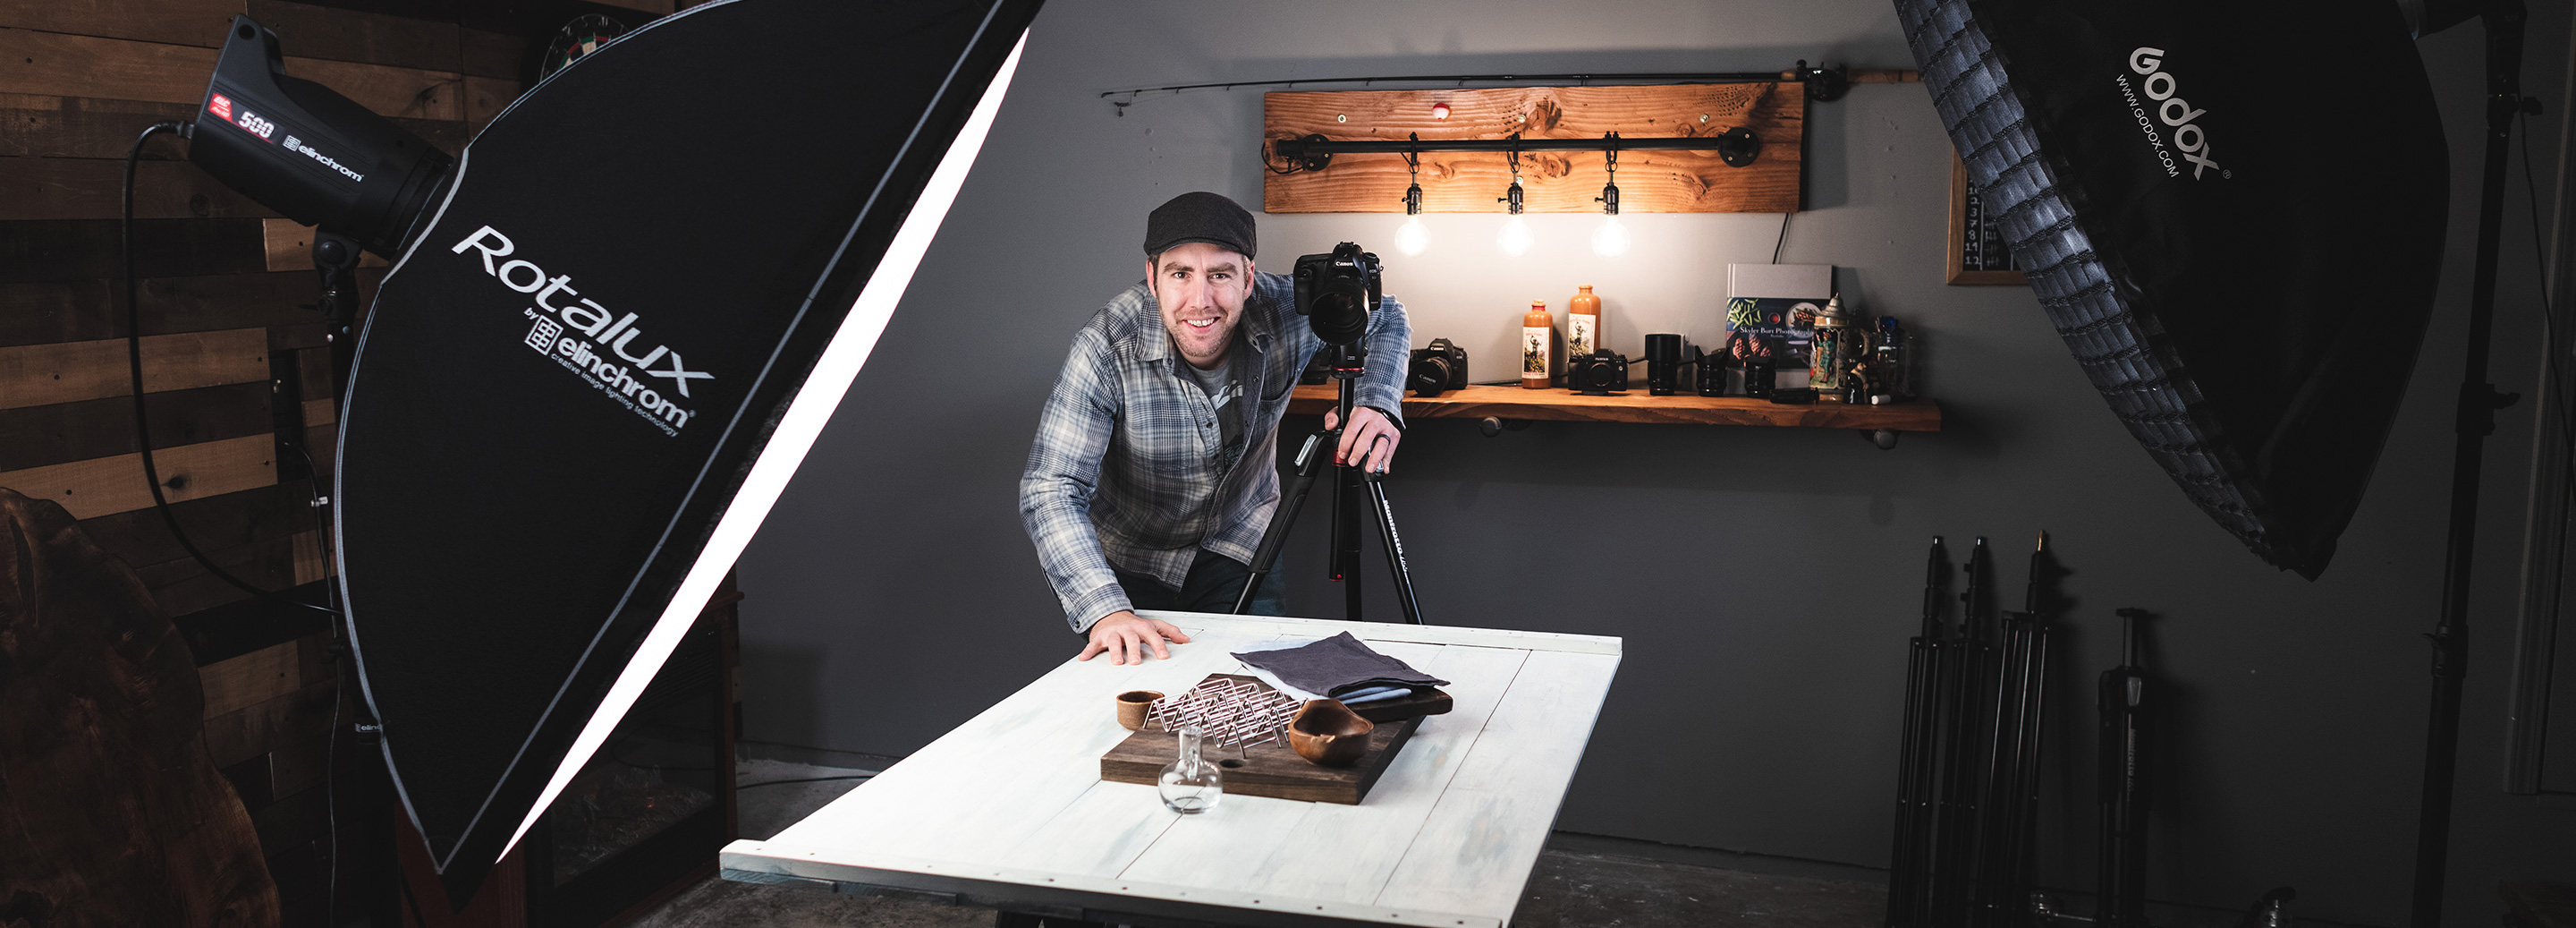 Online Food Photography Course Lightroom